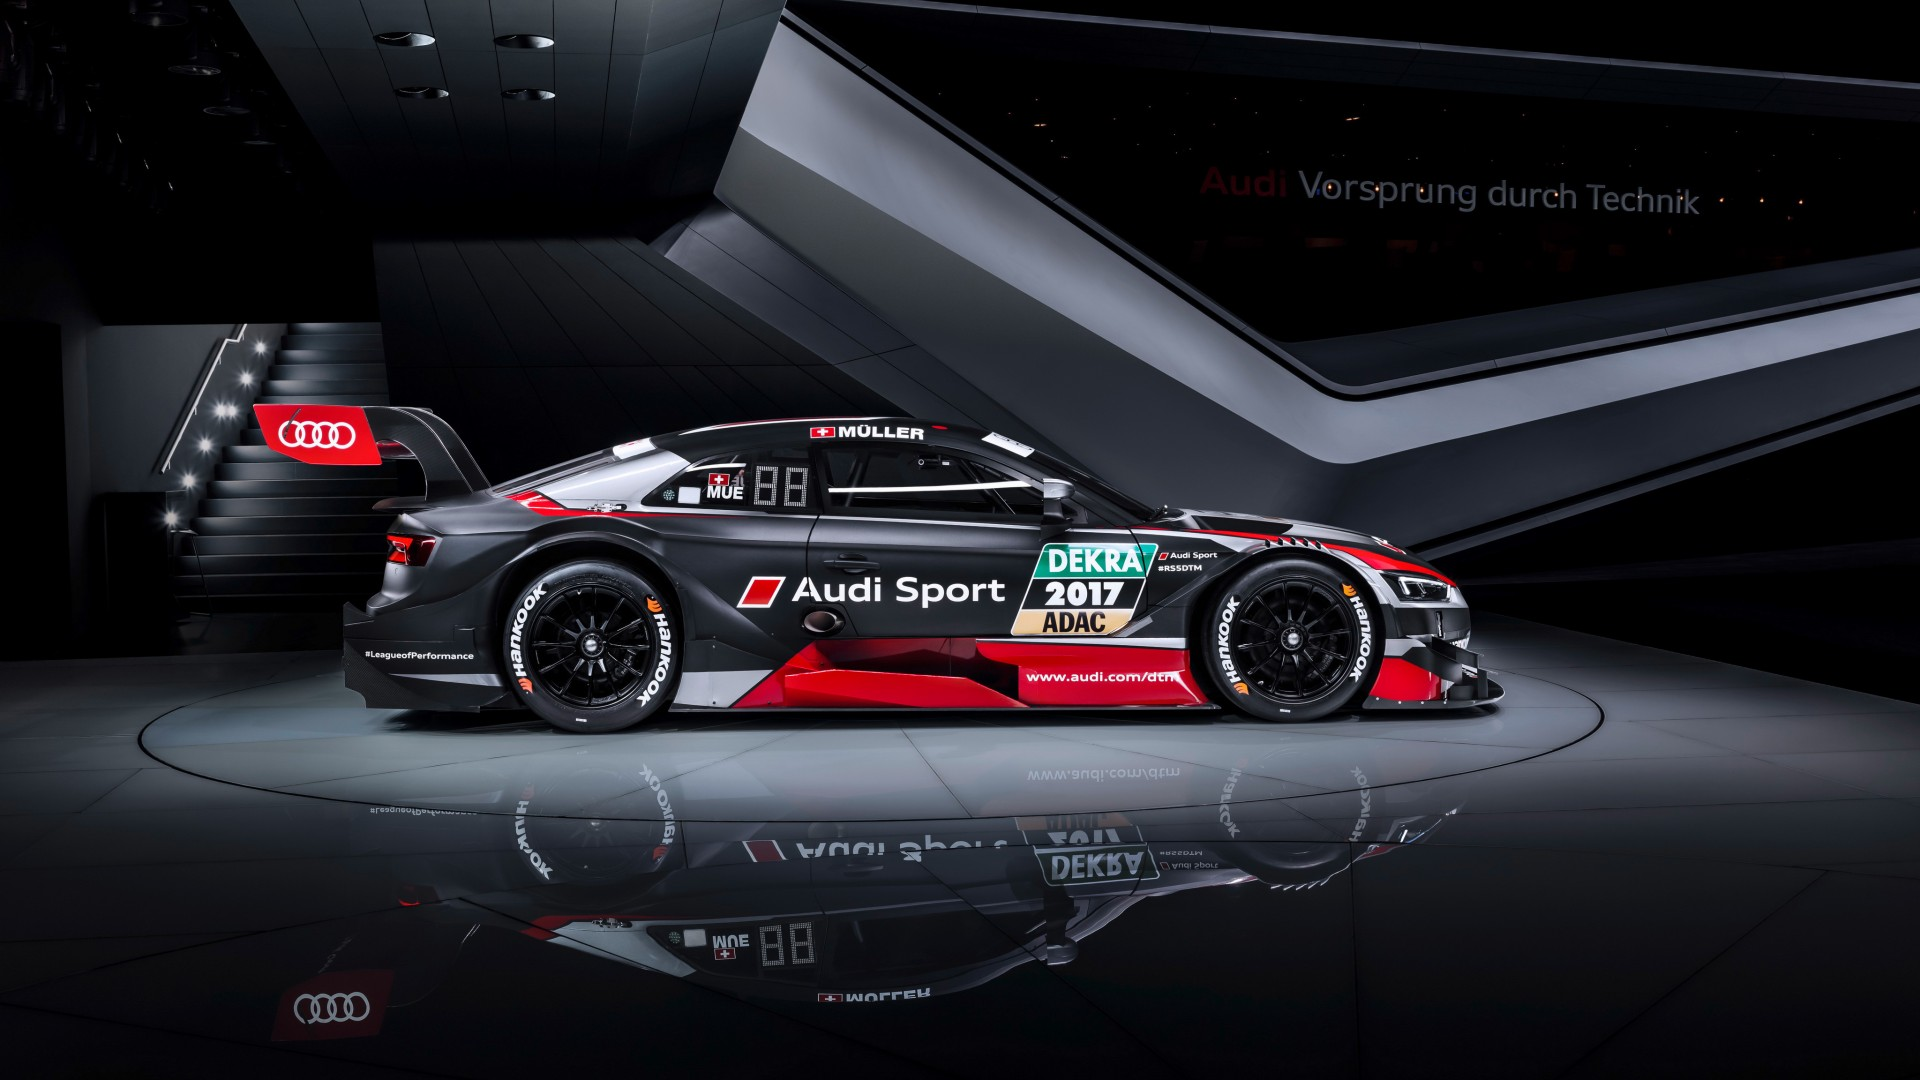 2018 Audi Rs 5 Coupe Dtm 4k Wallpaper Hd Car Wallpapers